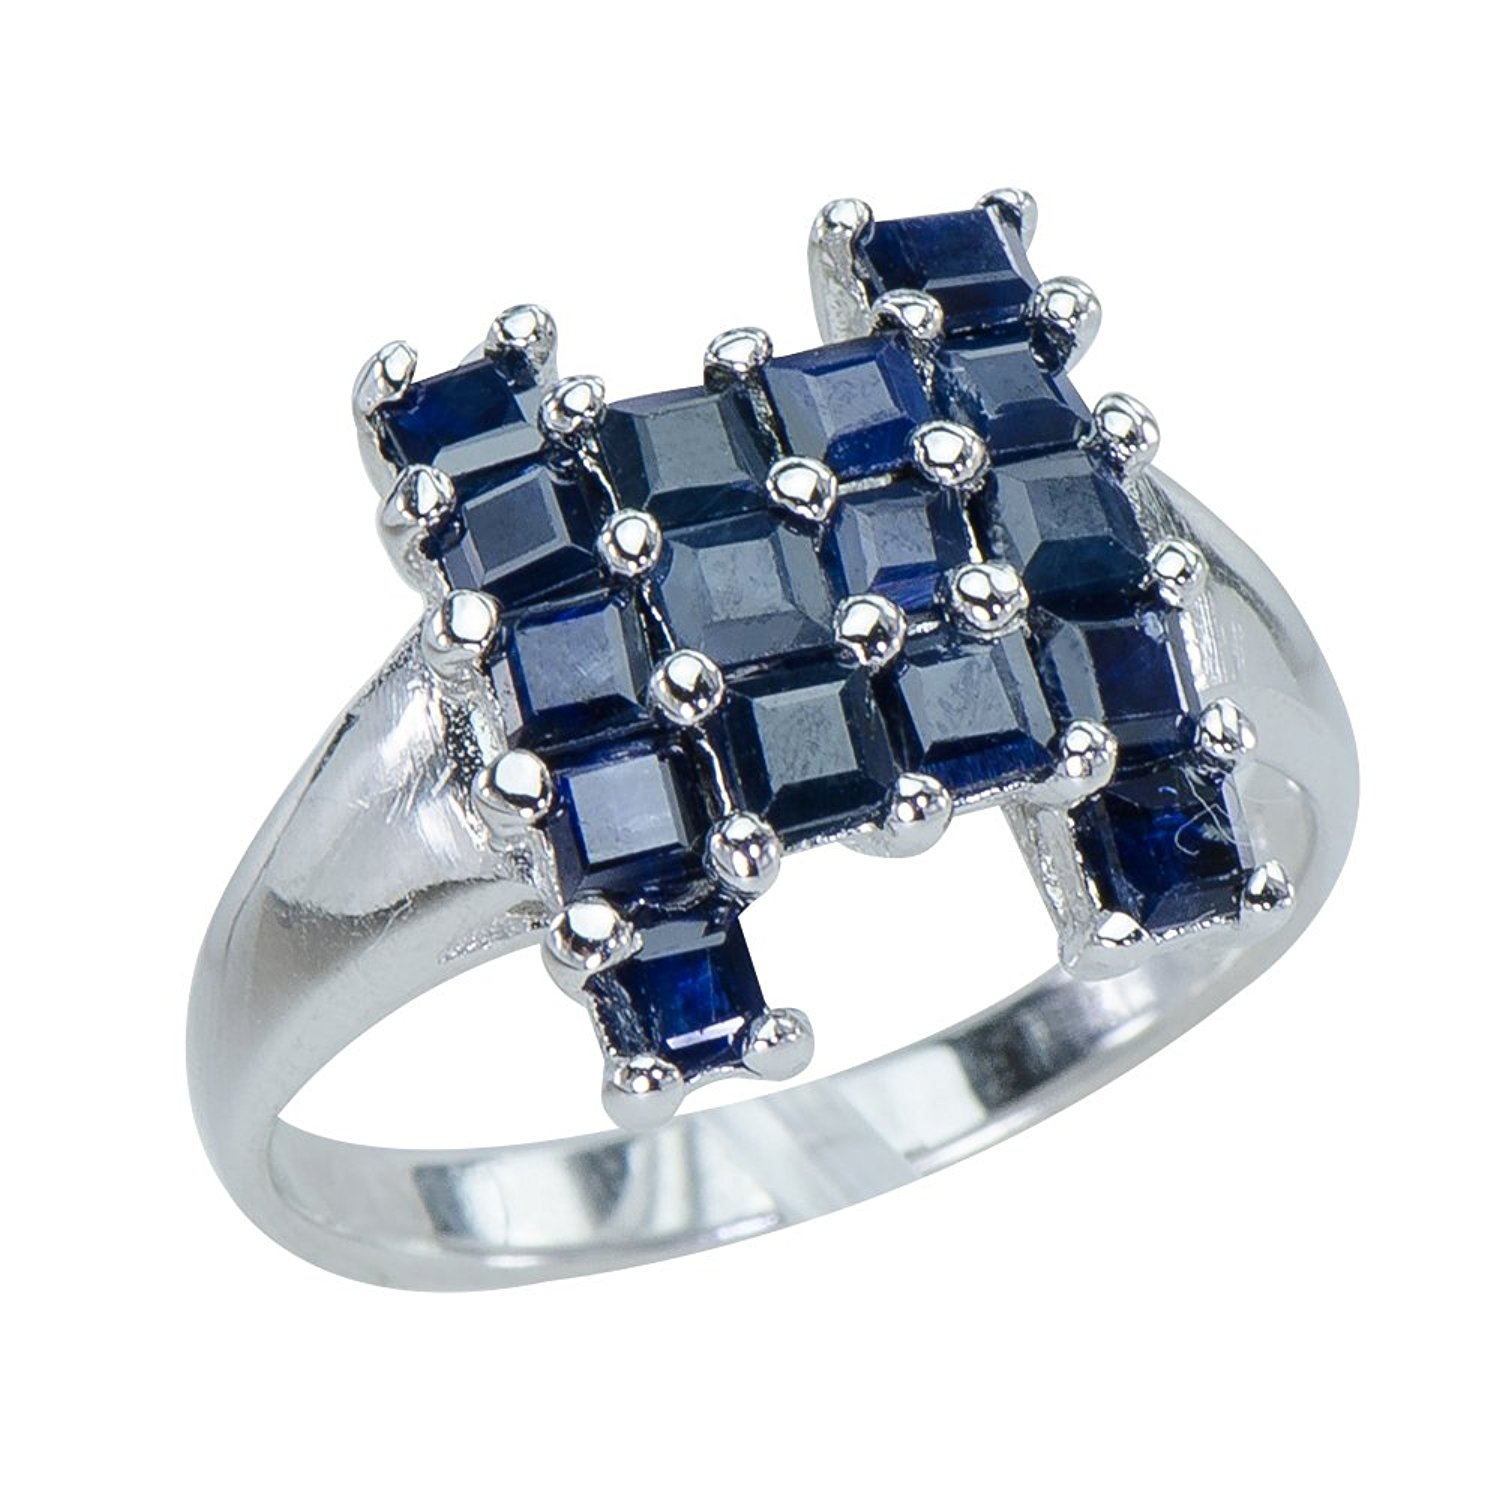 Caratera Fine Jewelry Eye-catching Natural Sapphire Gemstones 925 Sterling Silver Statement Ring